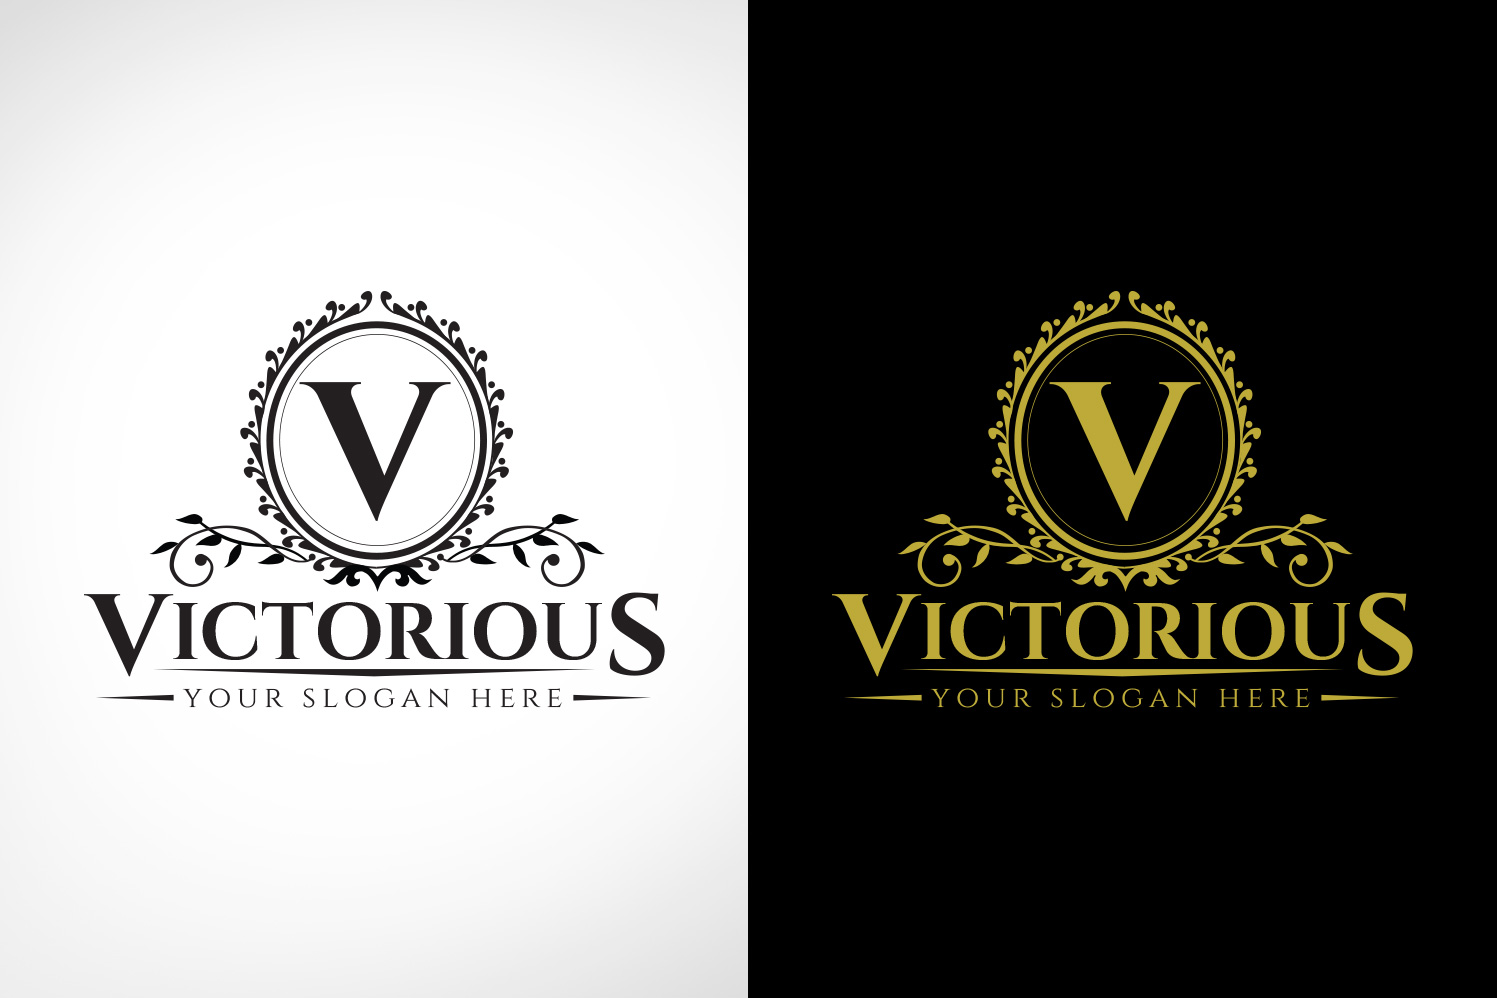 victorious luxury logo